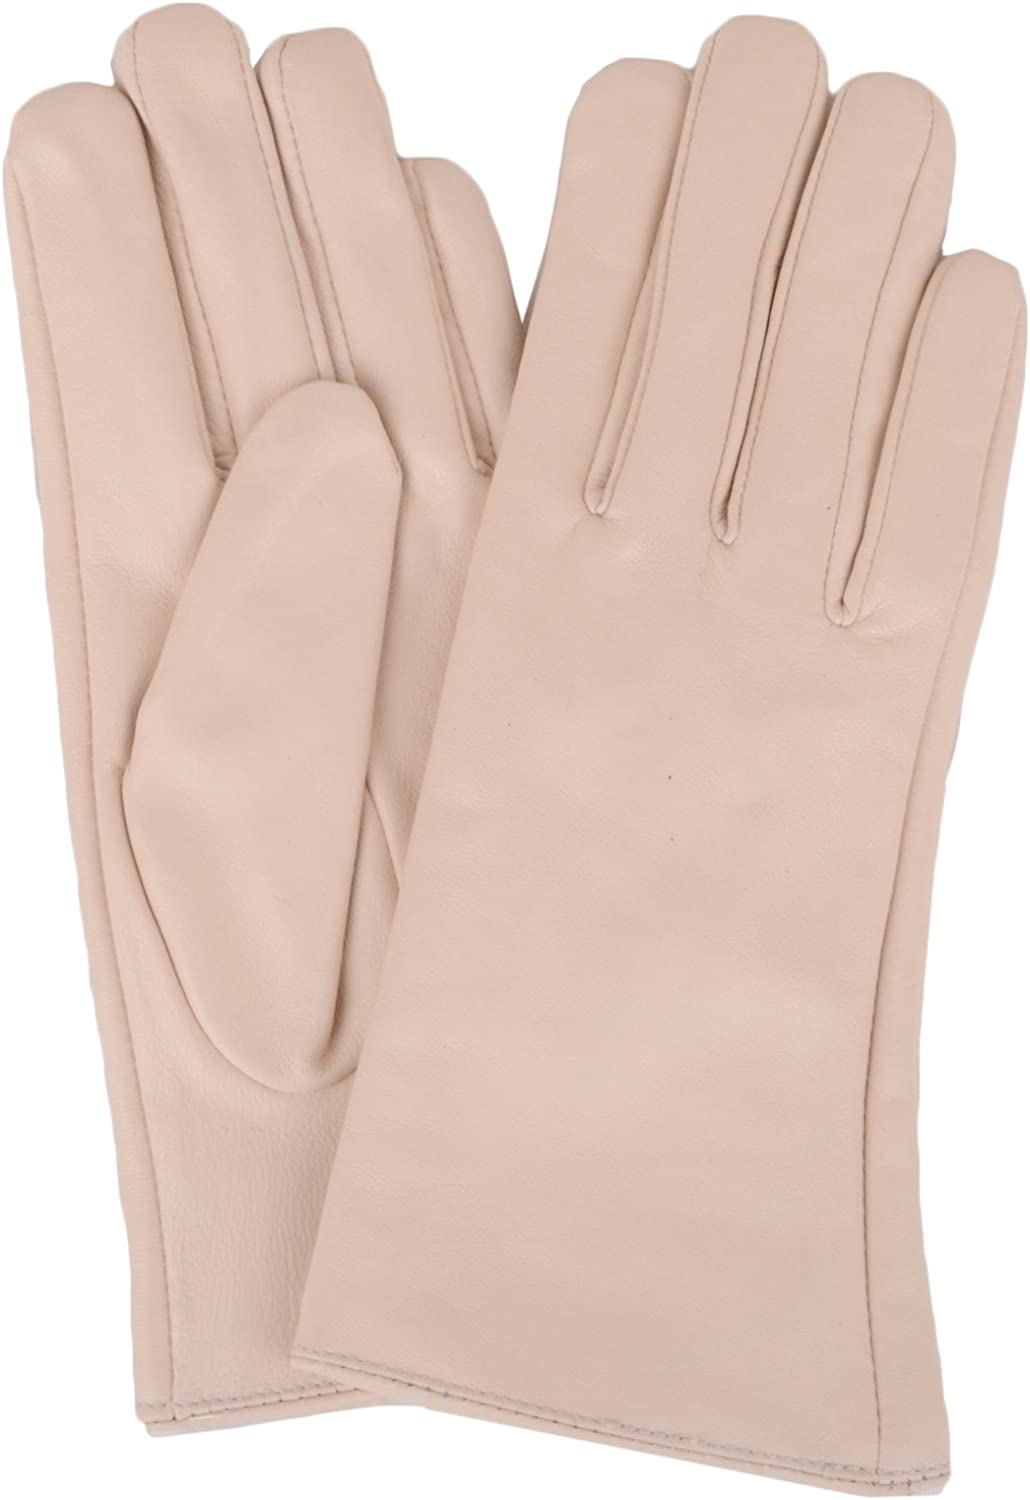 SNUGRUGS Butter Soft Premium Leather Glove Guanti Donna